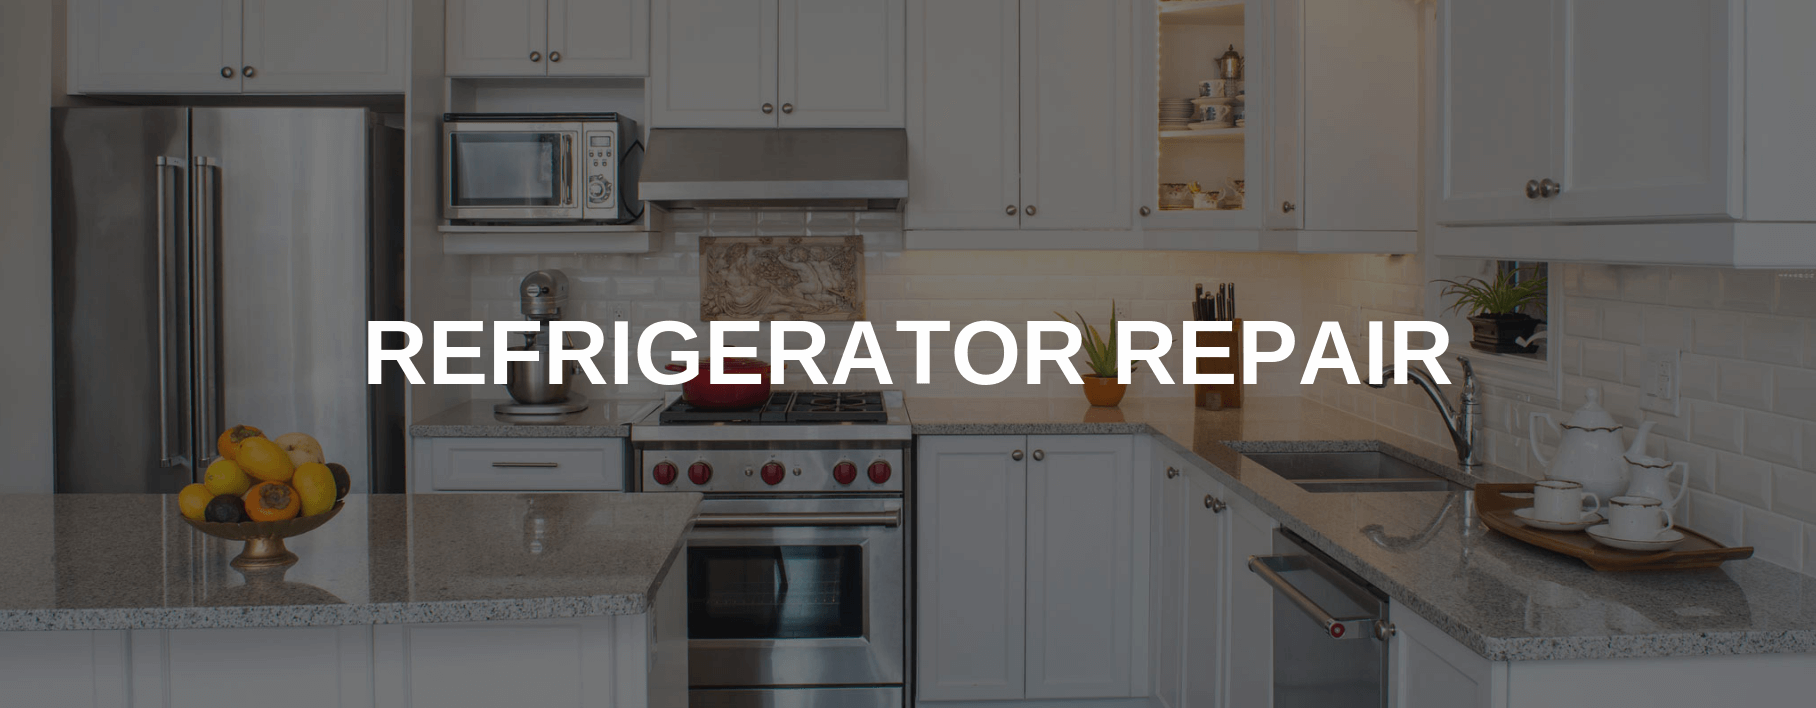 refrigerator repair north las vegas